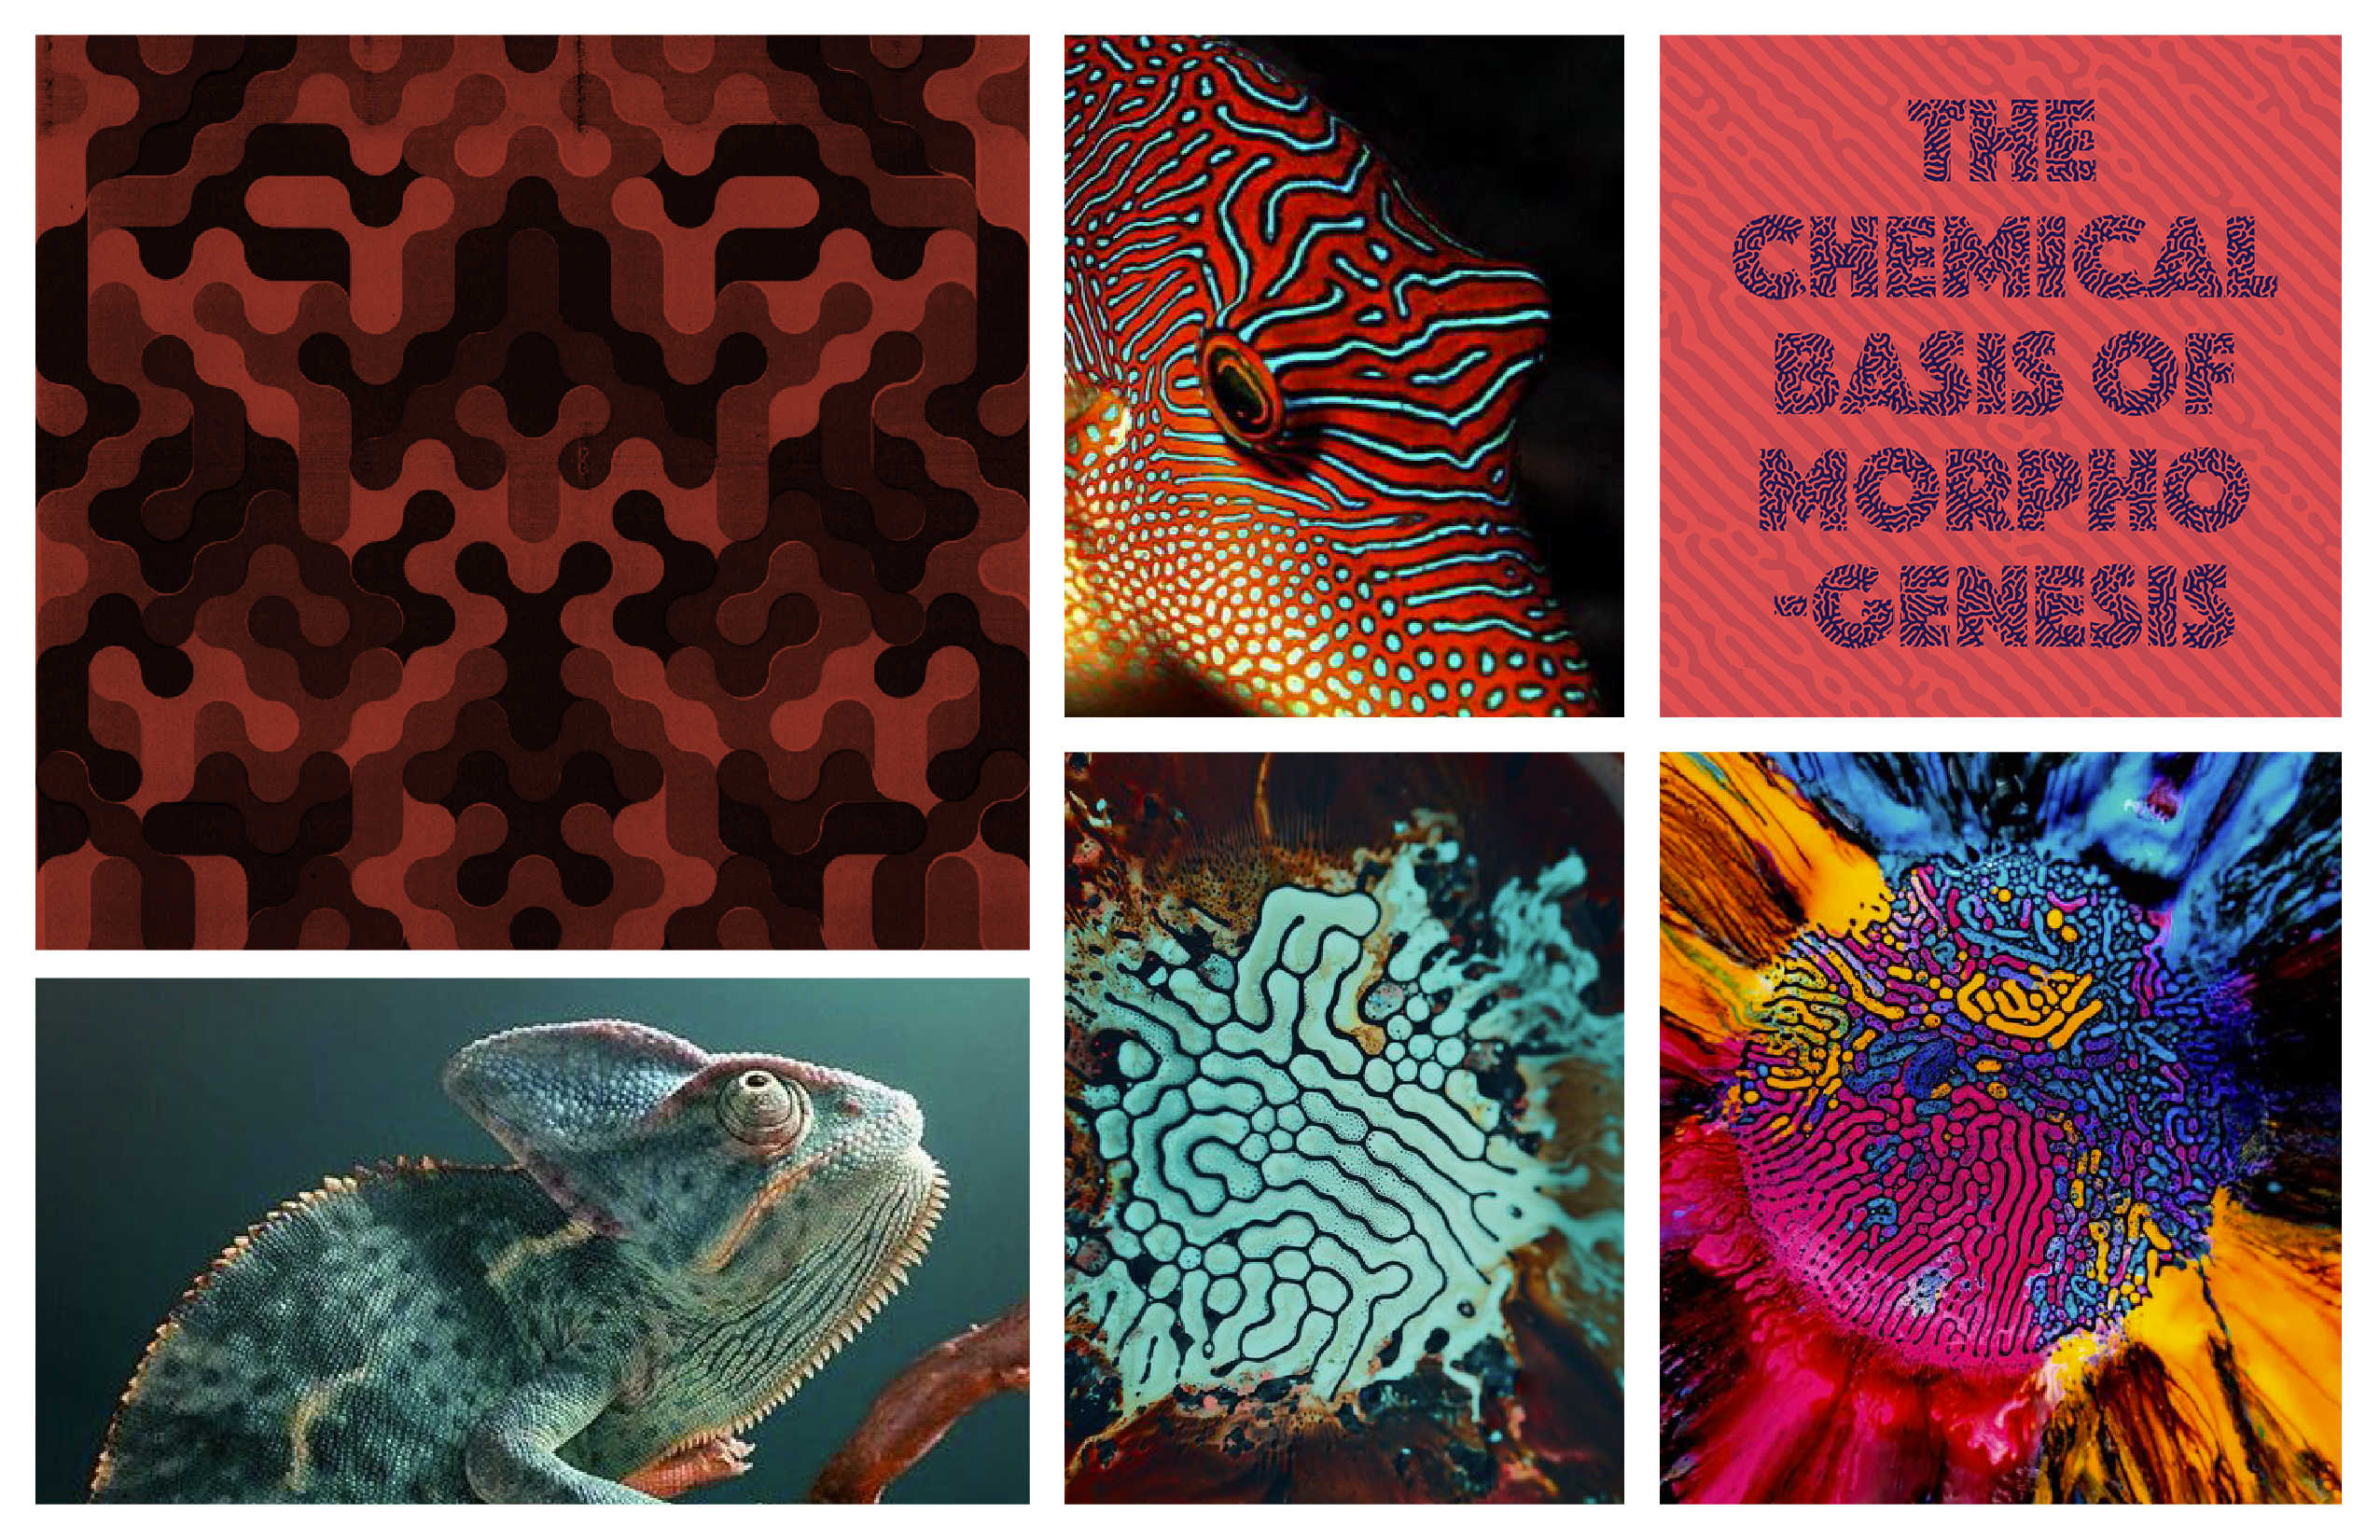 ADAPT mood board with colors and patterns inspired by the way nature adapts